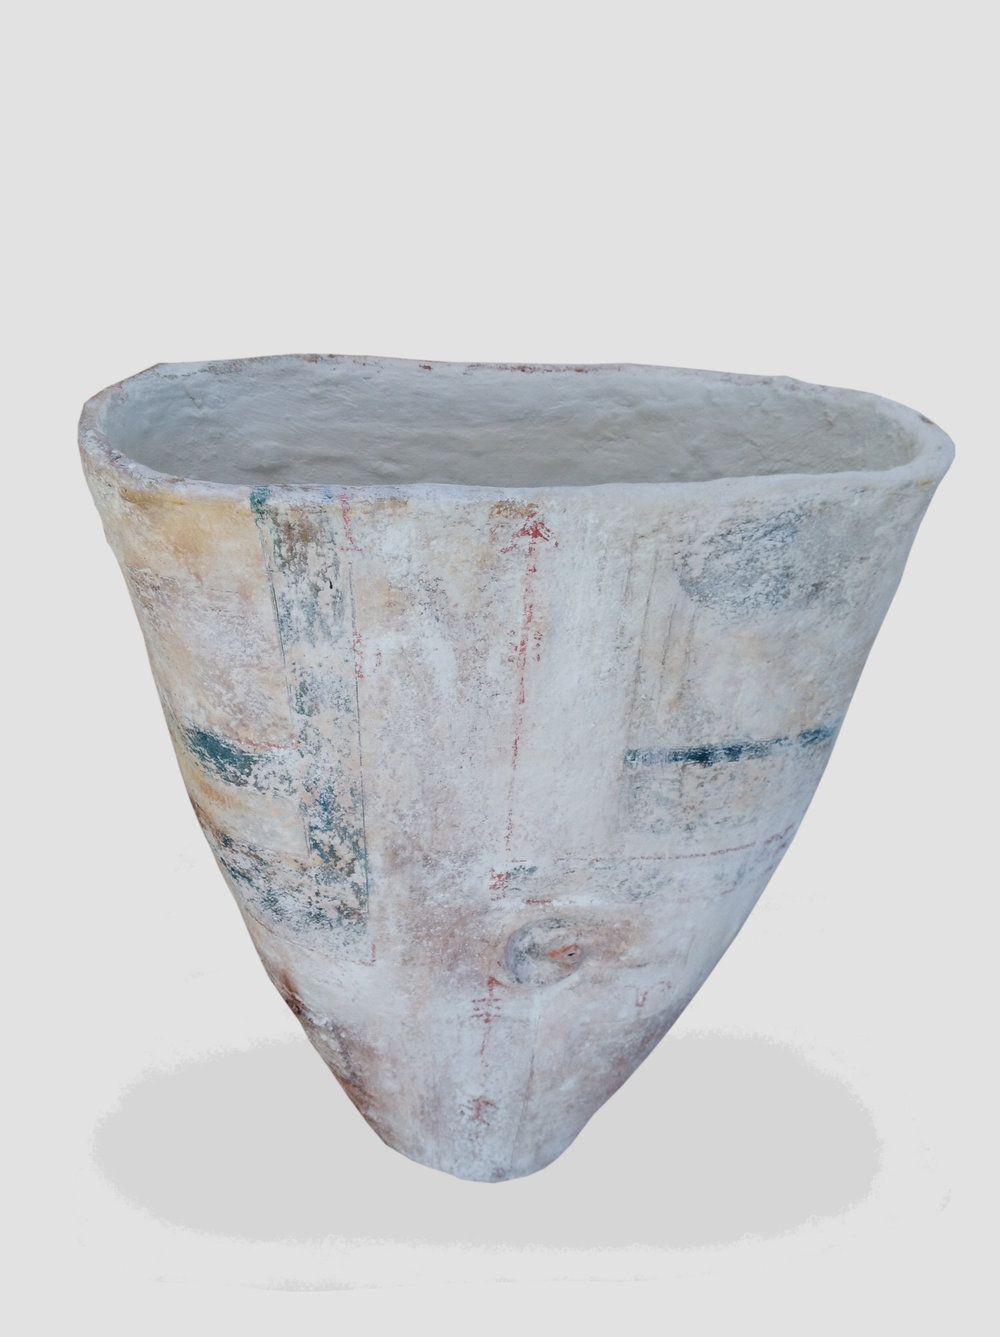 Earthy Vessel  John Philips, artis fiberclay, indoor/outdoor (has drainage hole at bottom)  $750.00